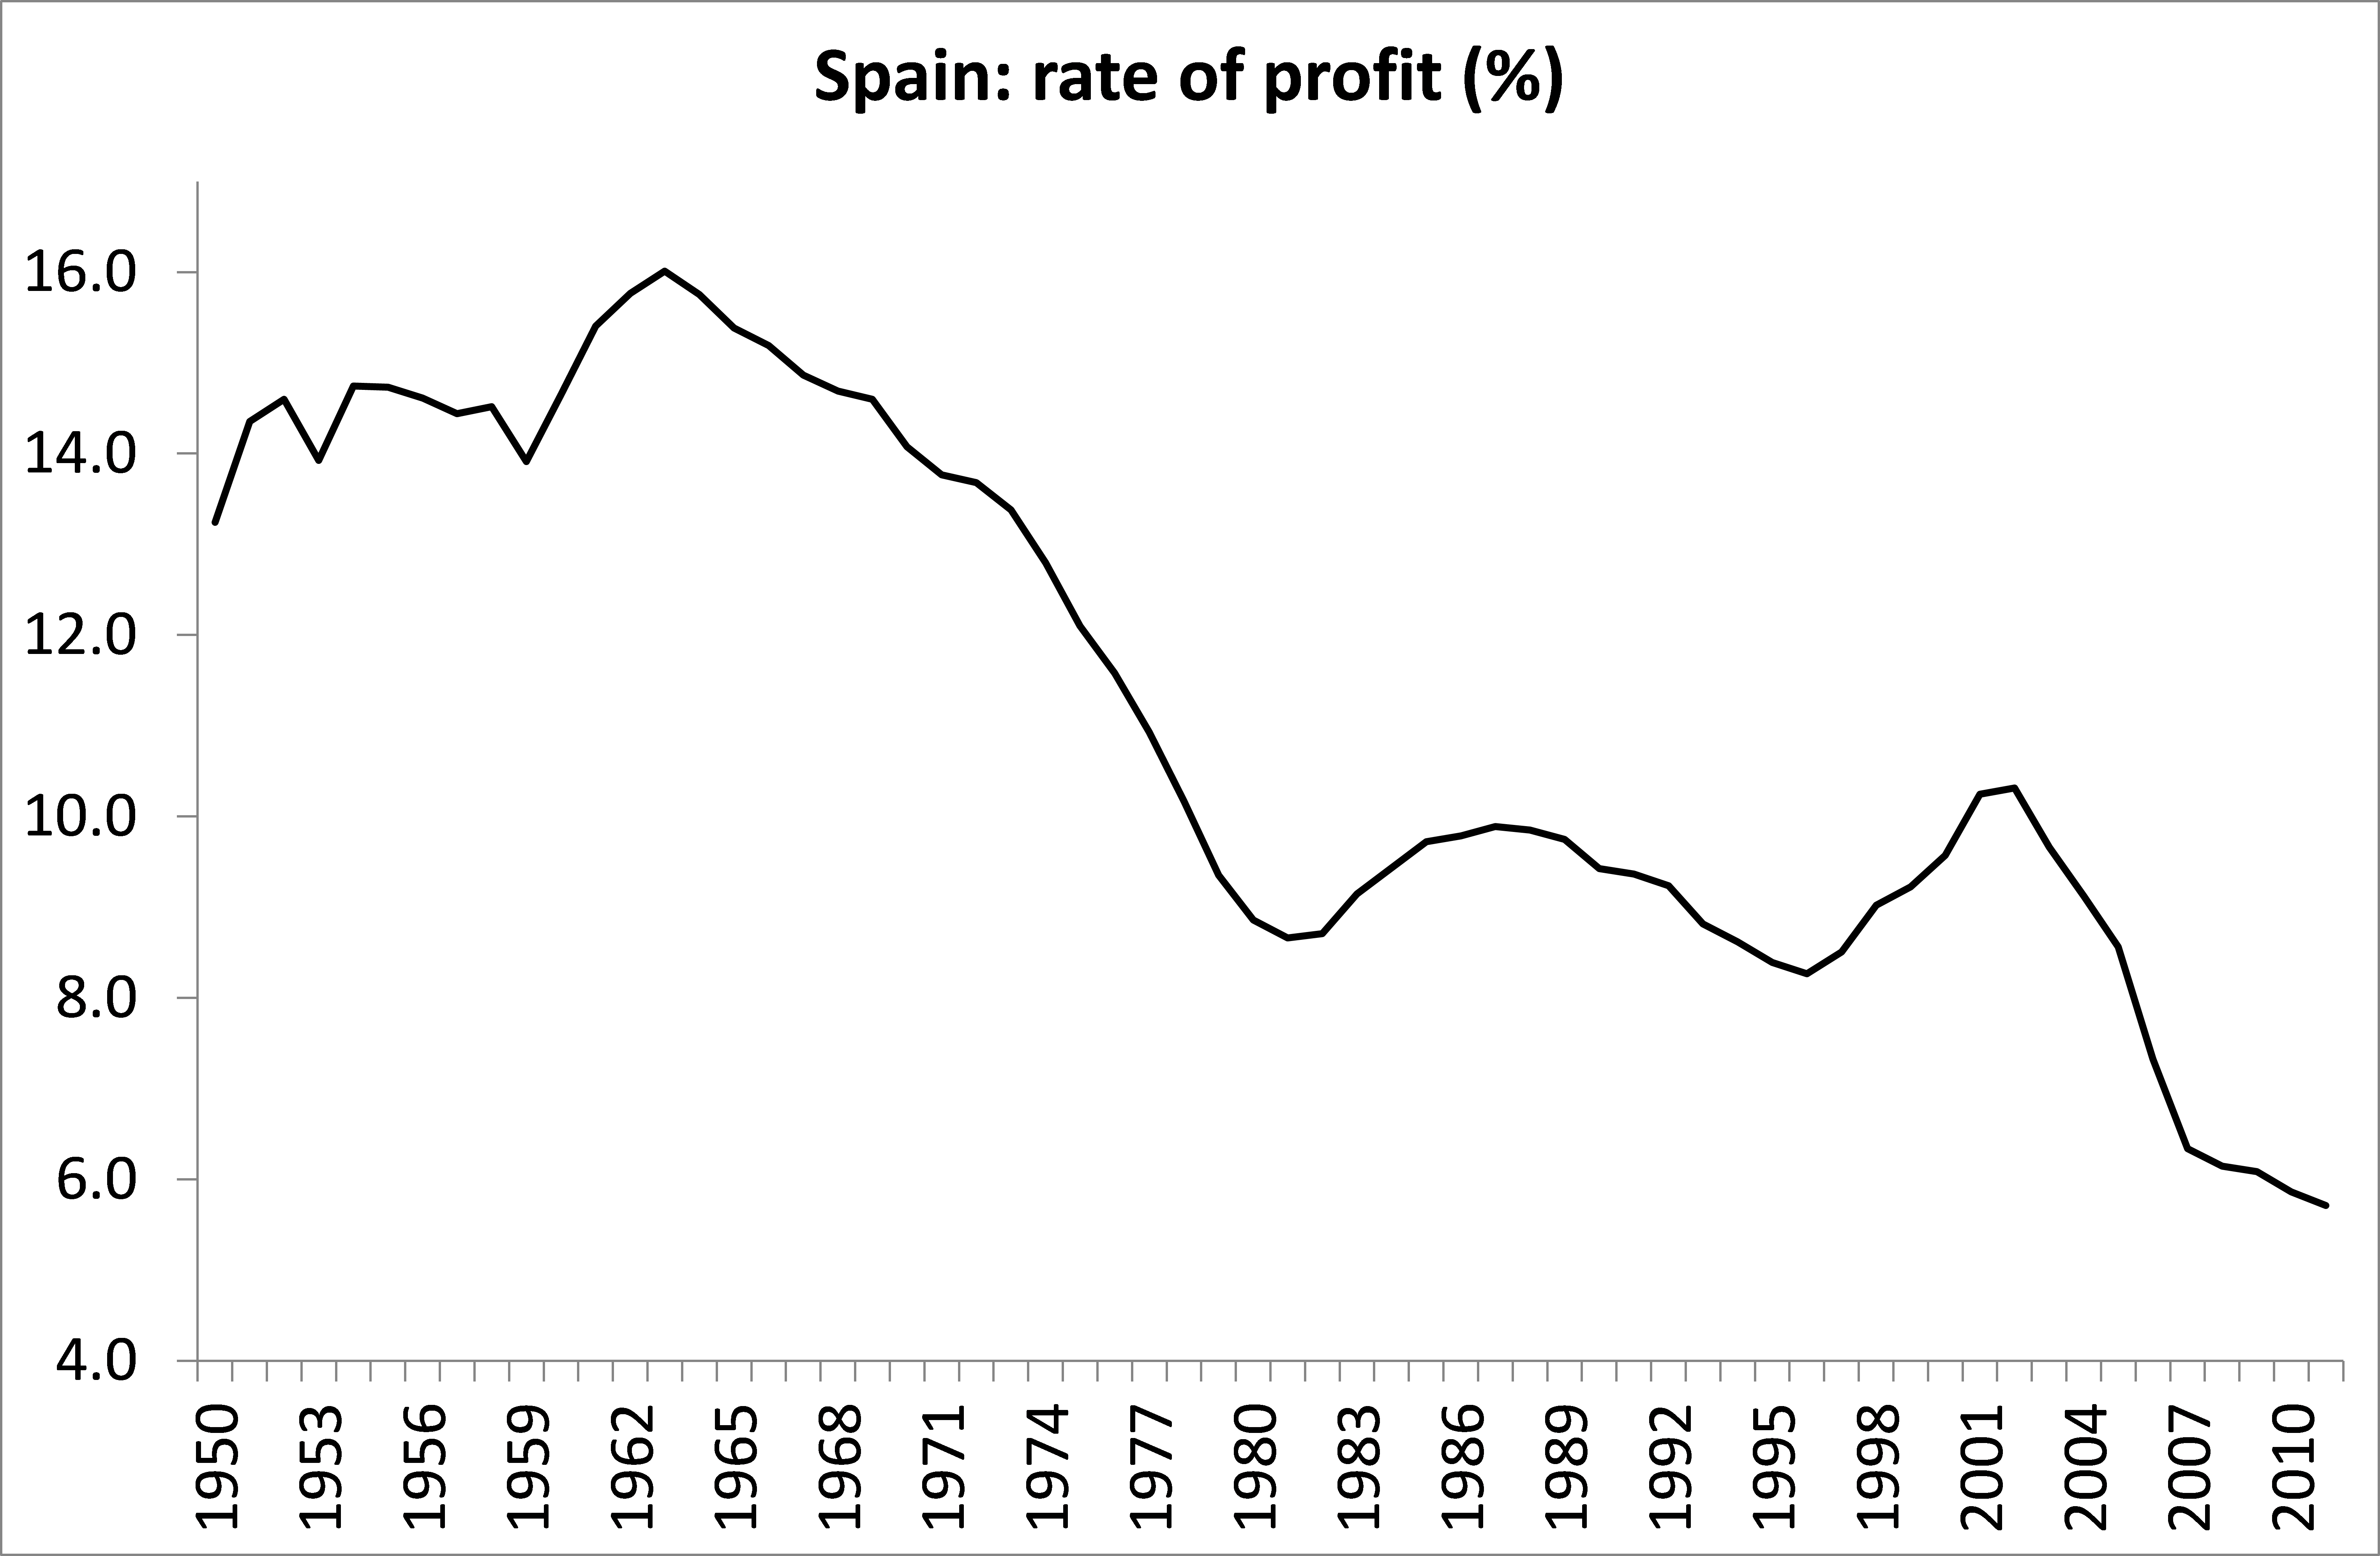 Luxembourg vs. Spain Economic Analysis and Comparison essay writer uk